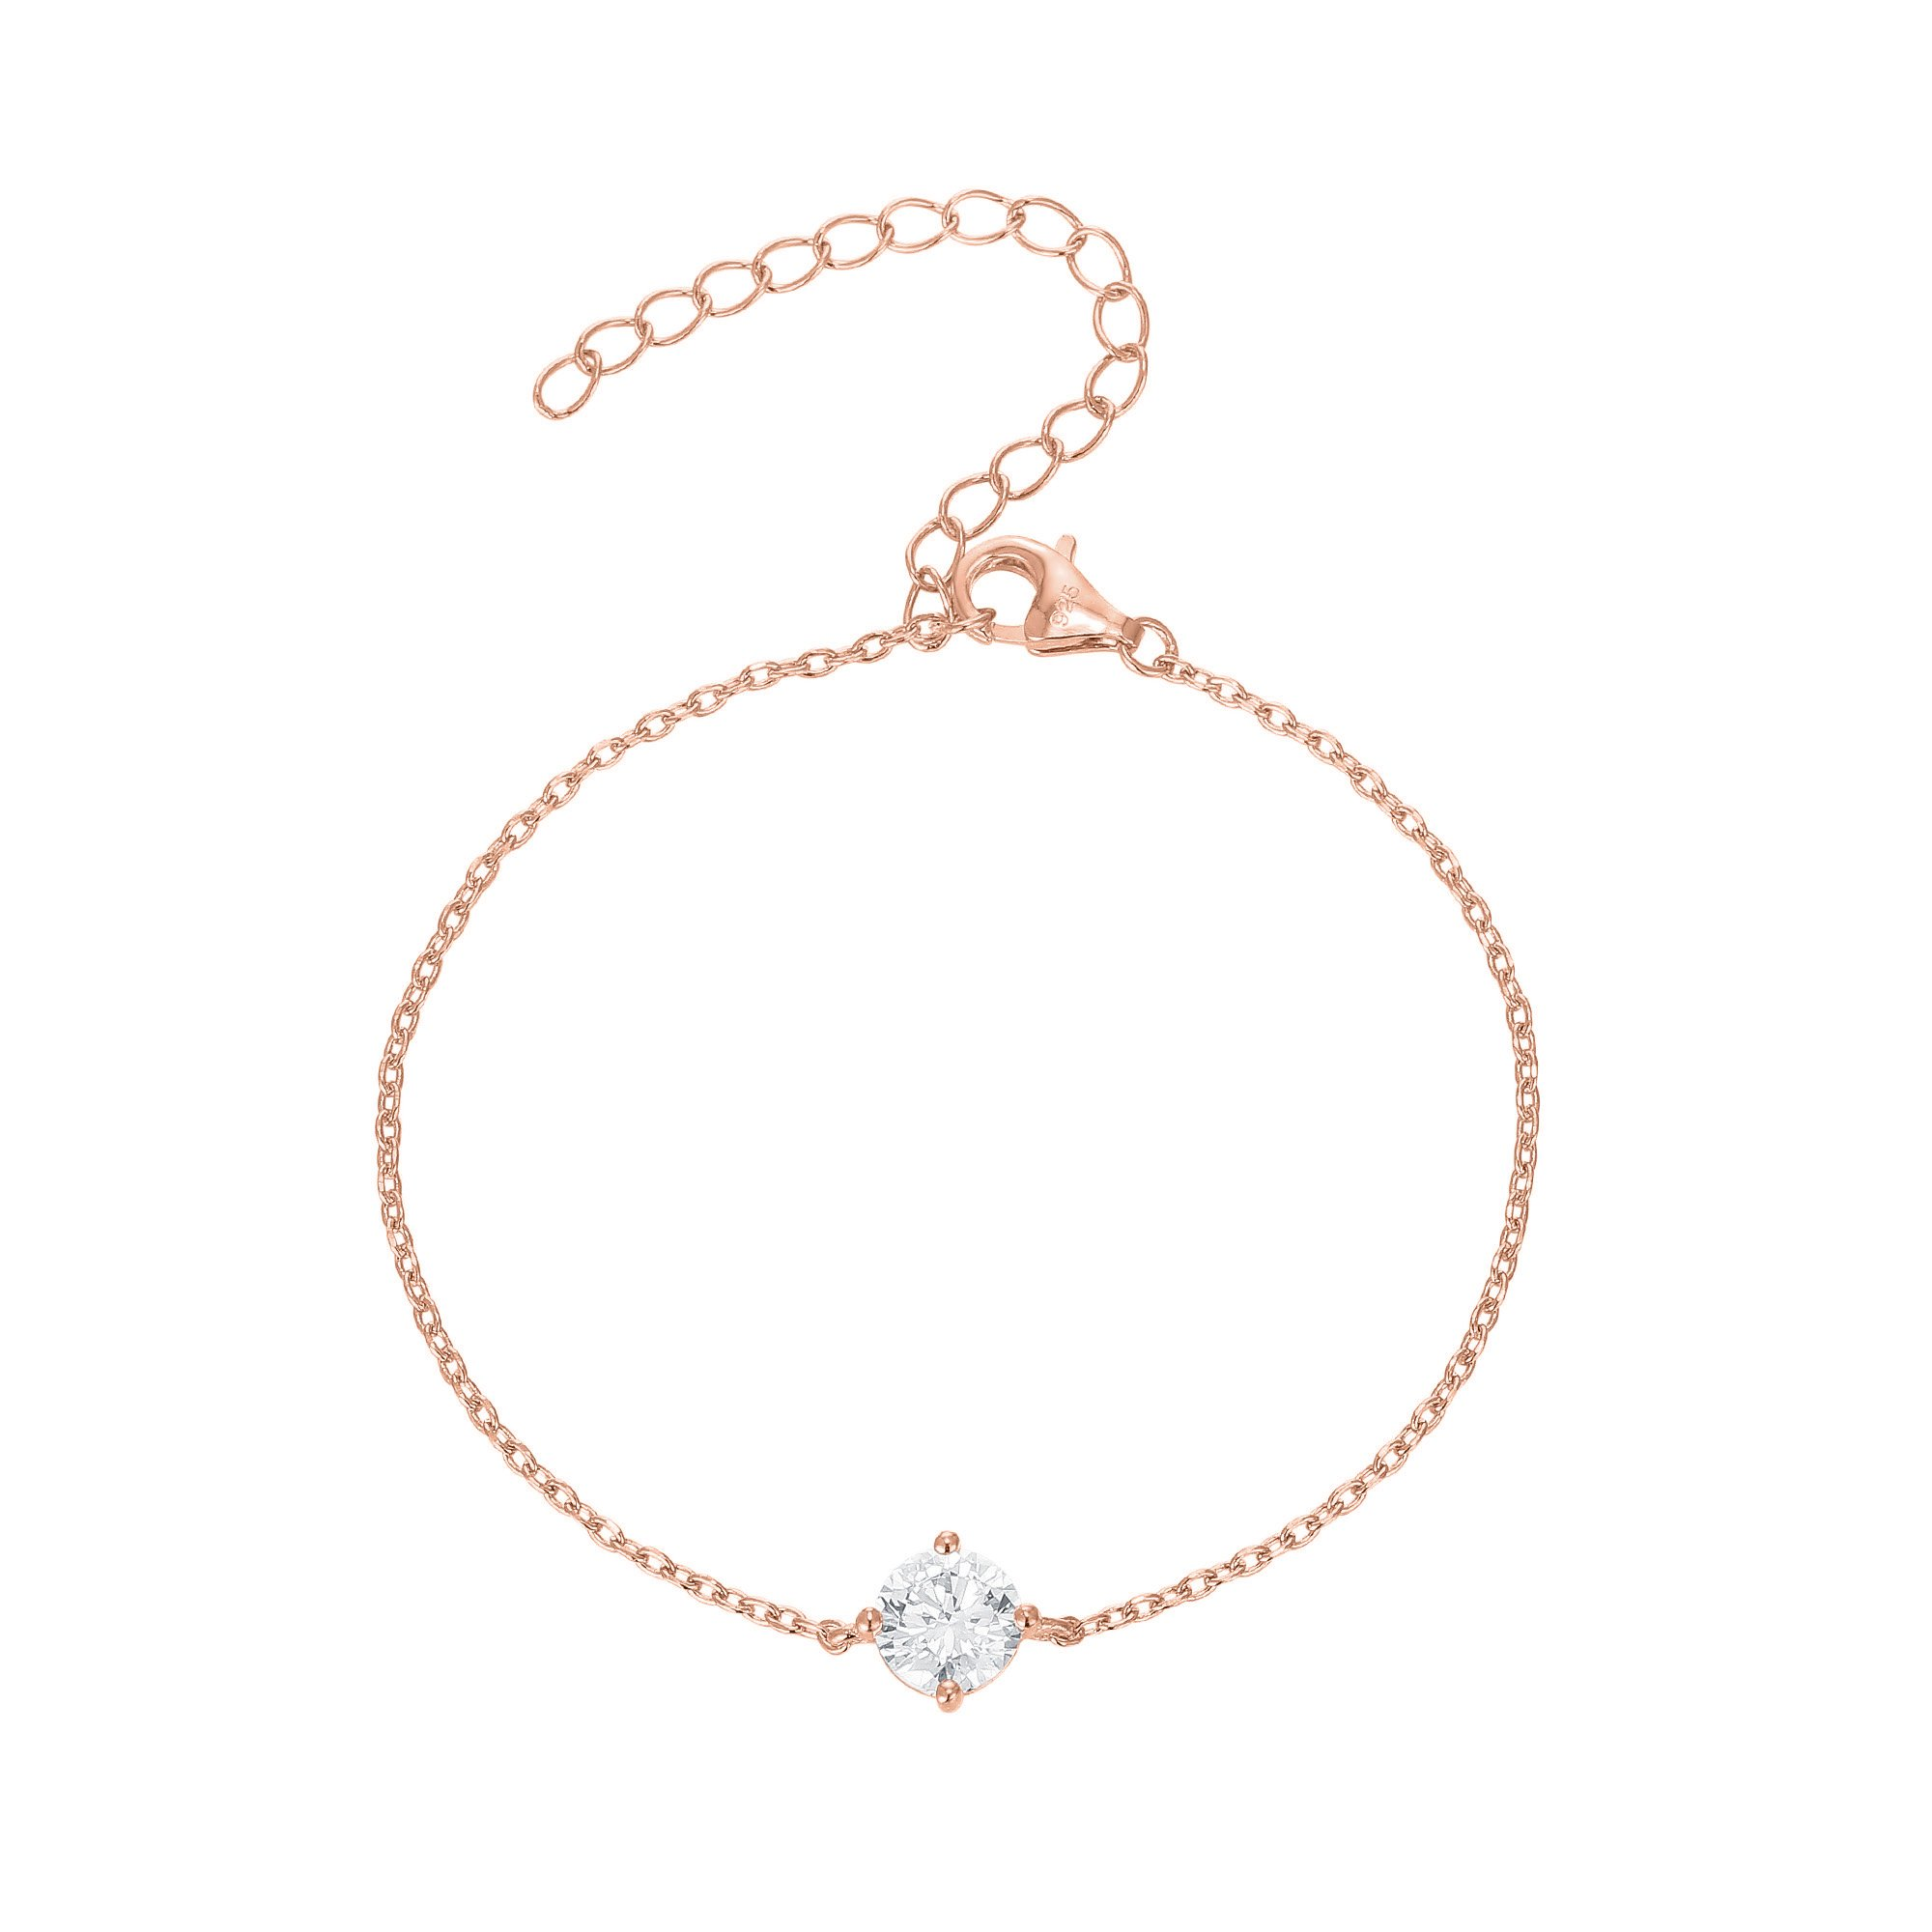 PAVOI 14K Gold Plated Simulated Solitaire Diamond Bracelet - Rose